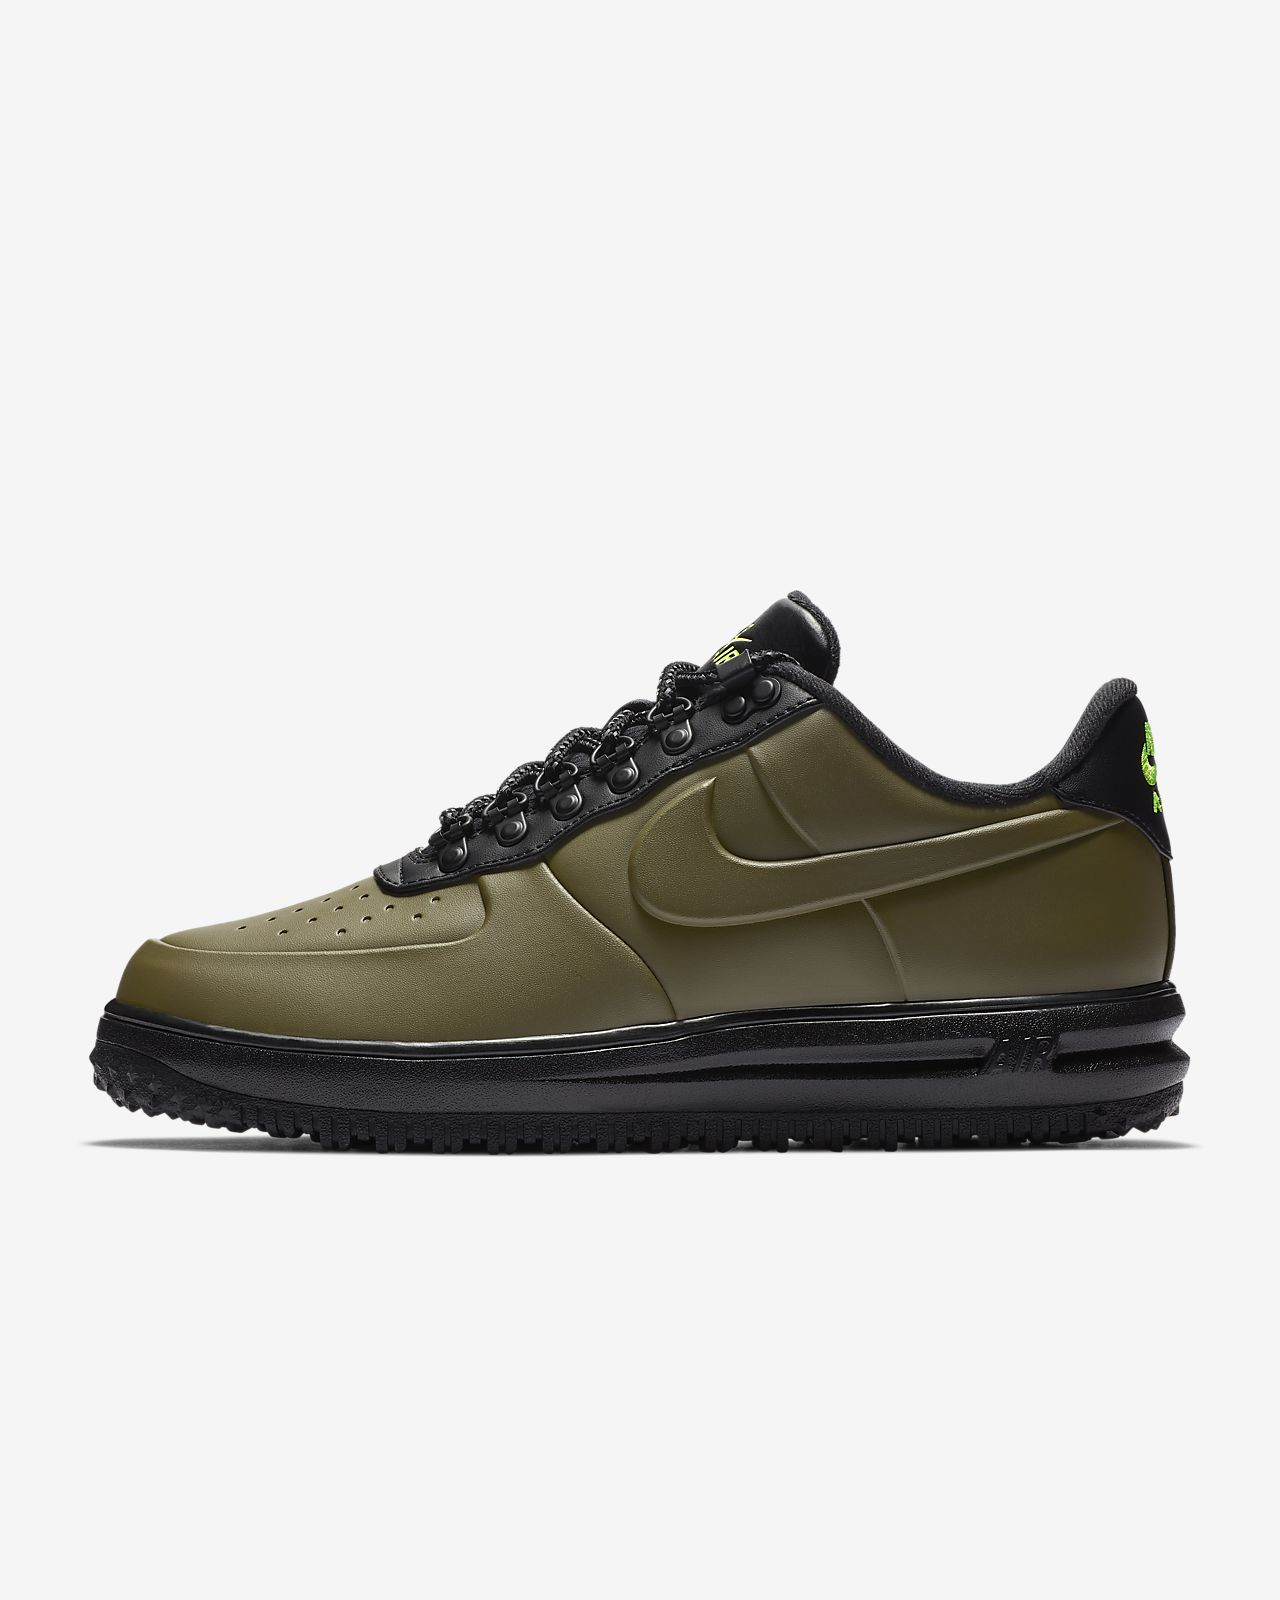 Nike Lunar Force 1 Duckboot Low Men s Shoe. Nike.com GB c5a8ce6cc39c